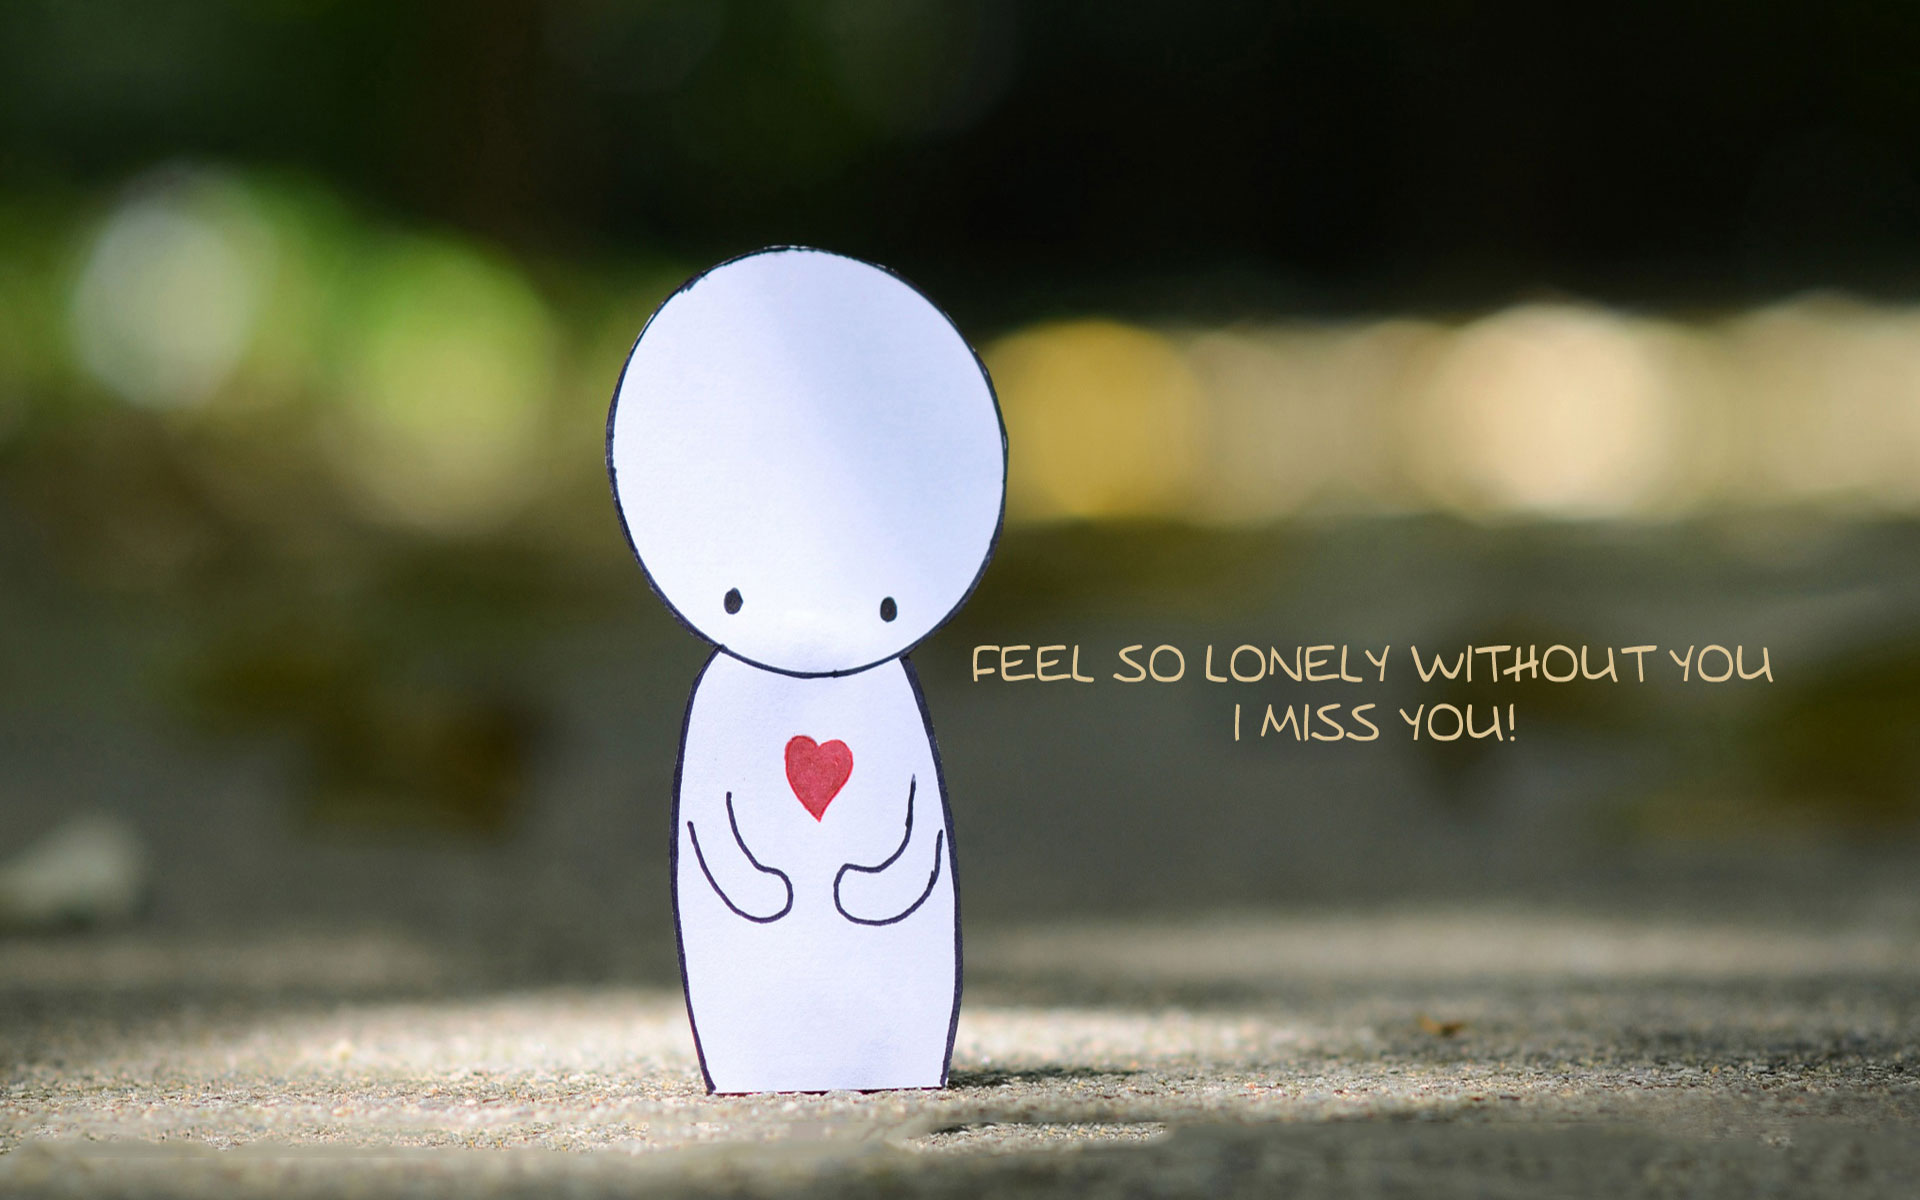 Hd i miss you wallpaper for him or herromantic wallpaperschobirdokan cute i miss you images altavistaventures Image collections